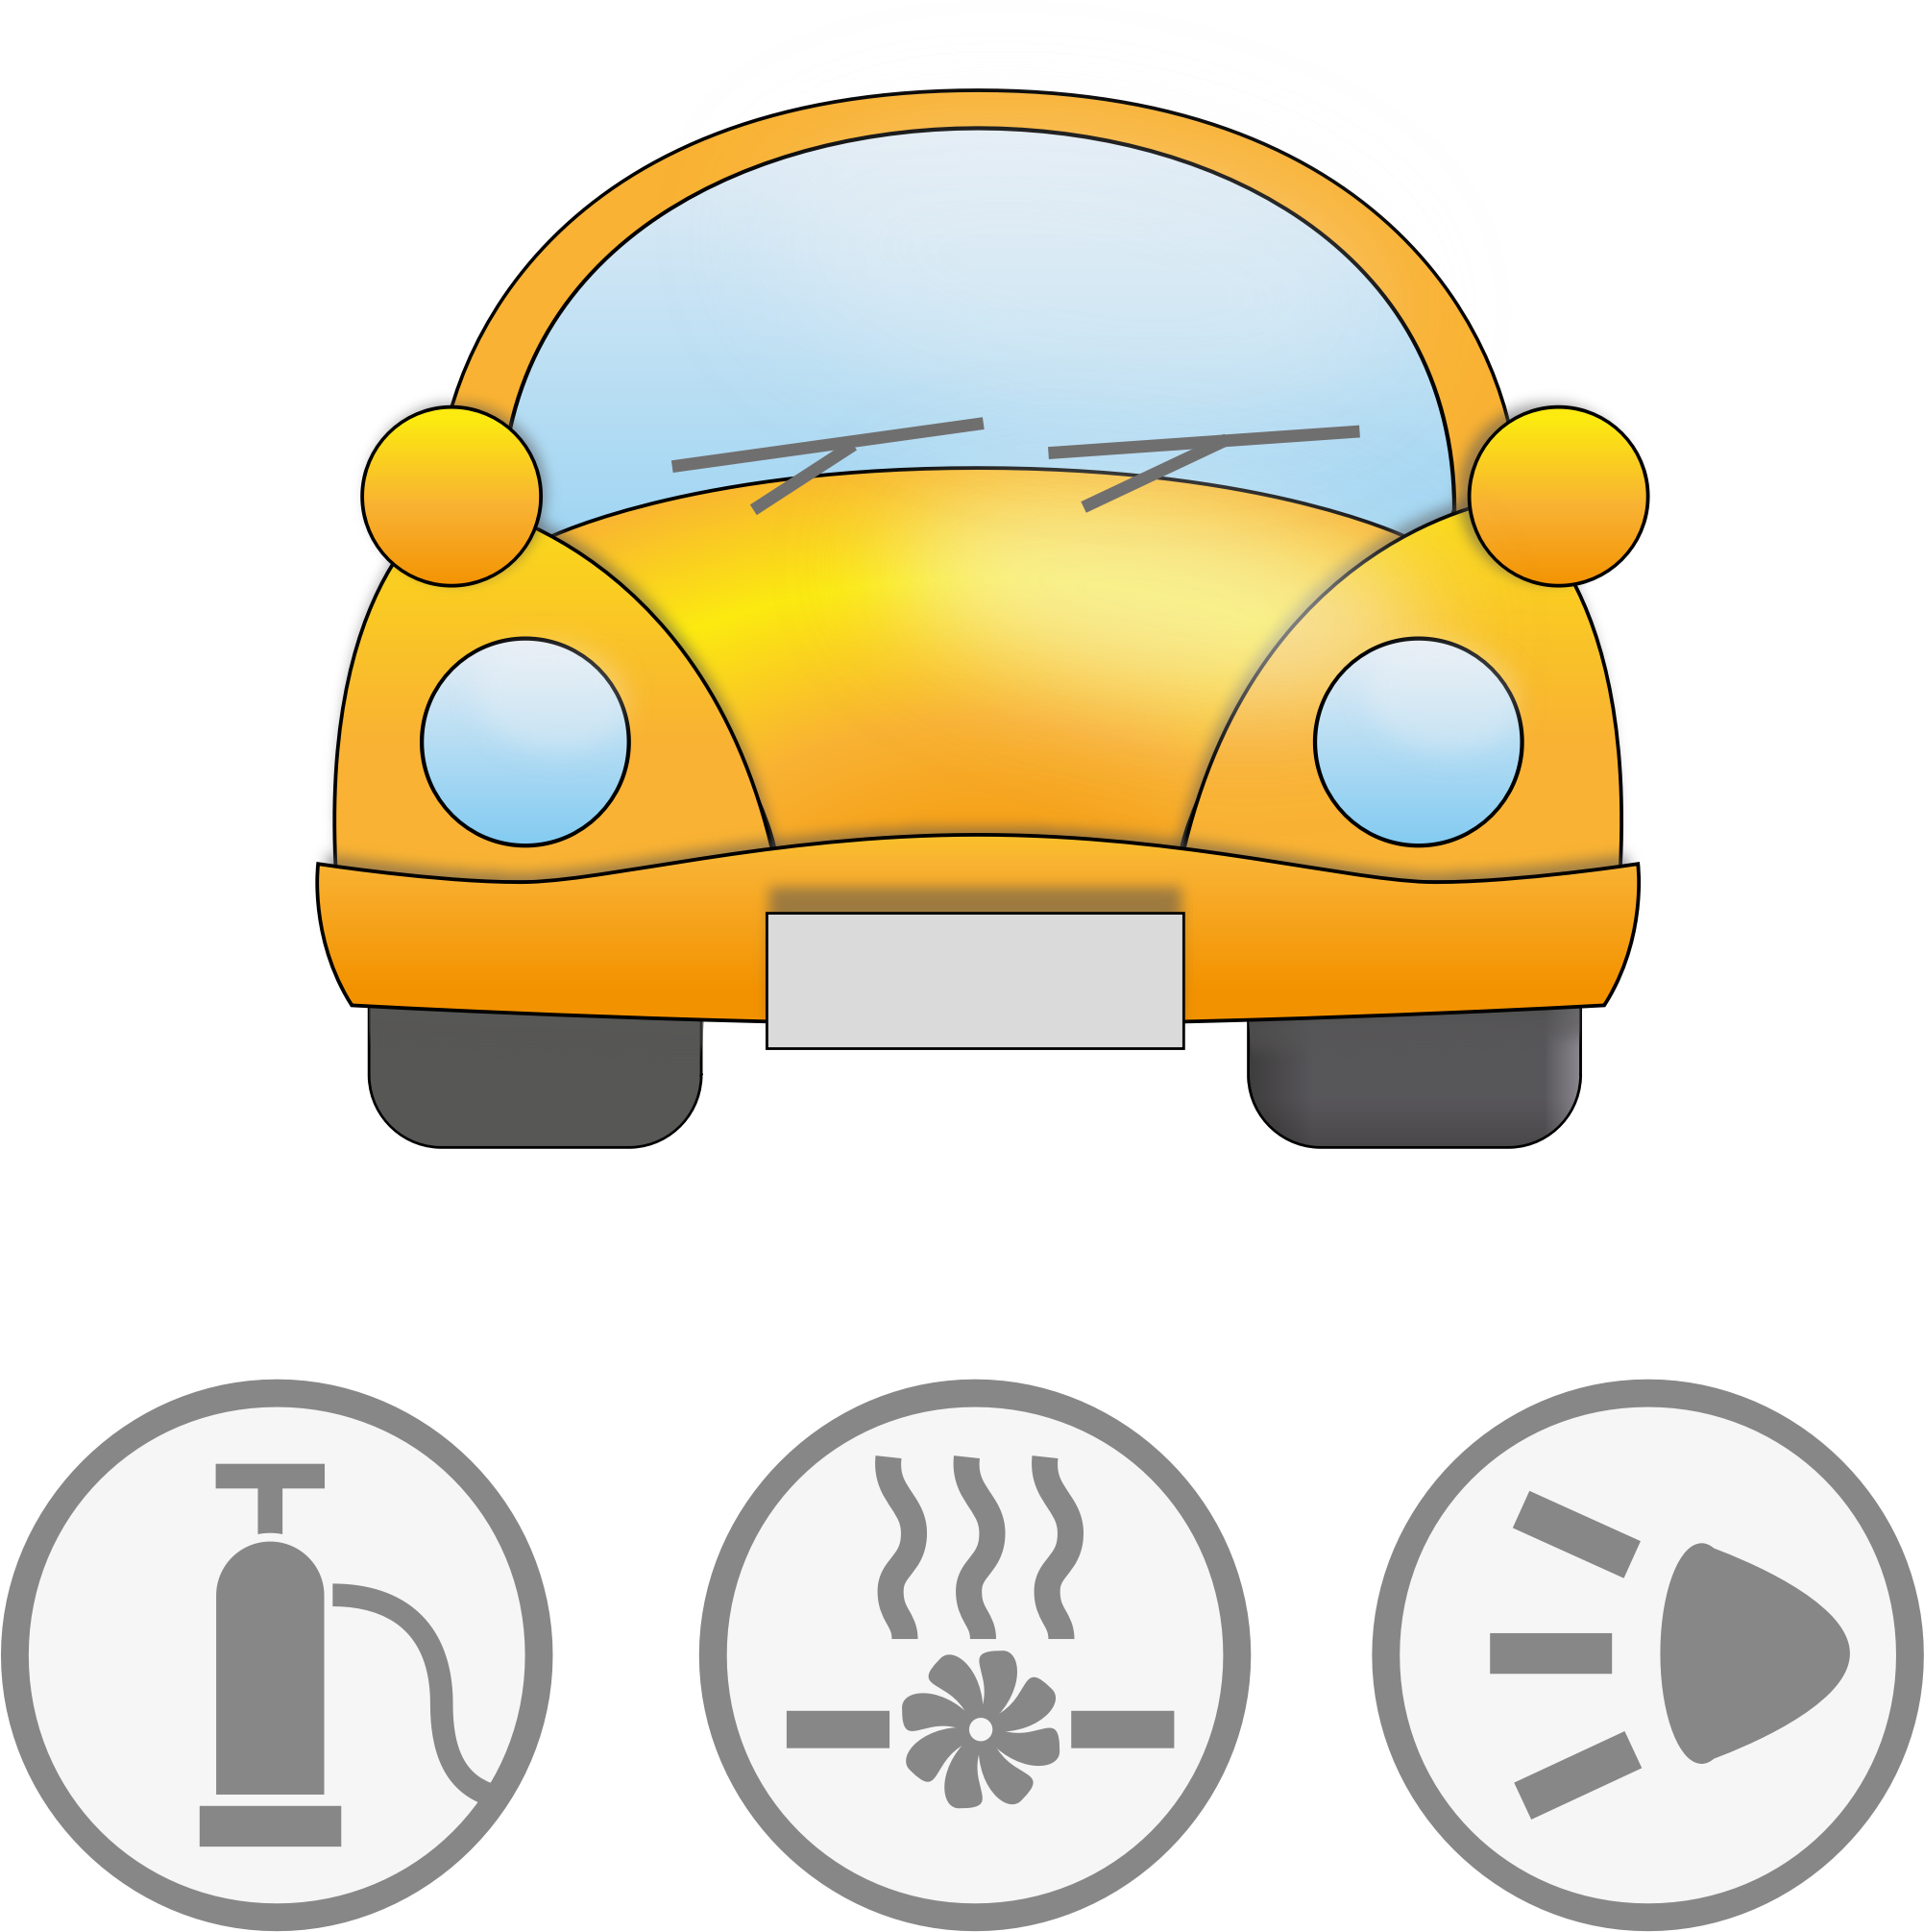 Clipart car yellow. With symbolic signs for